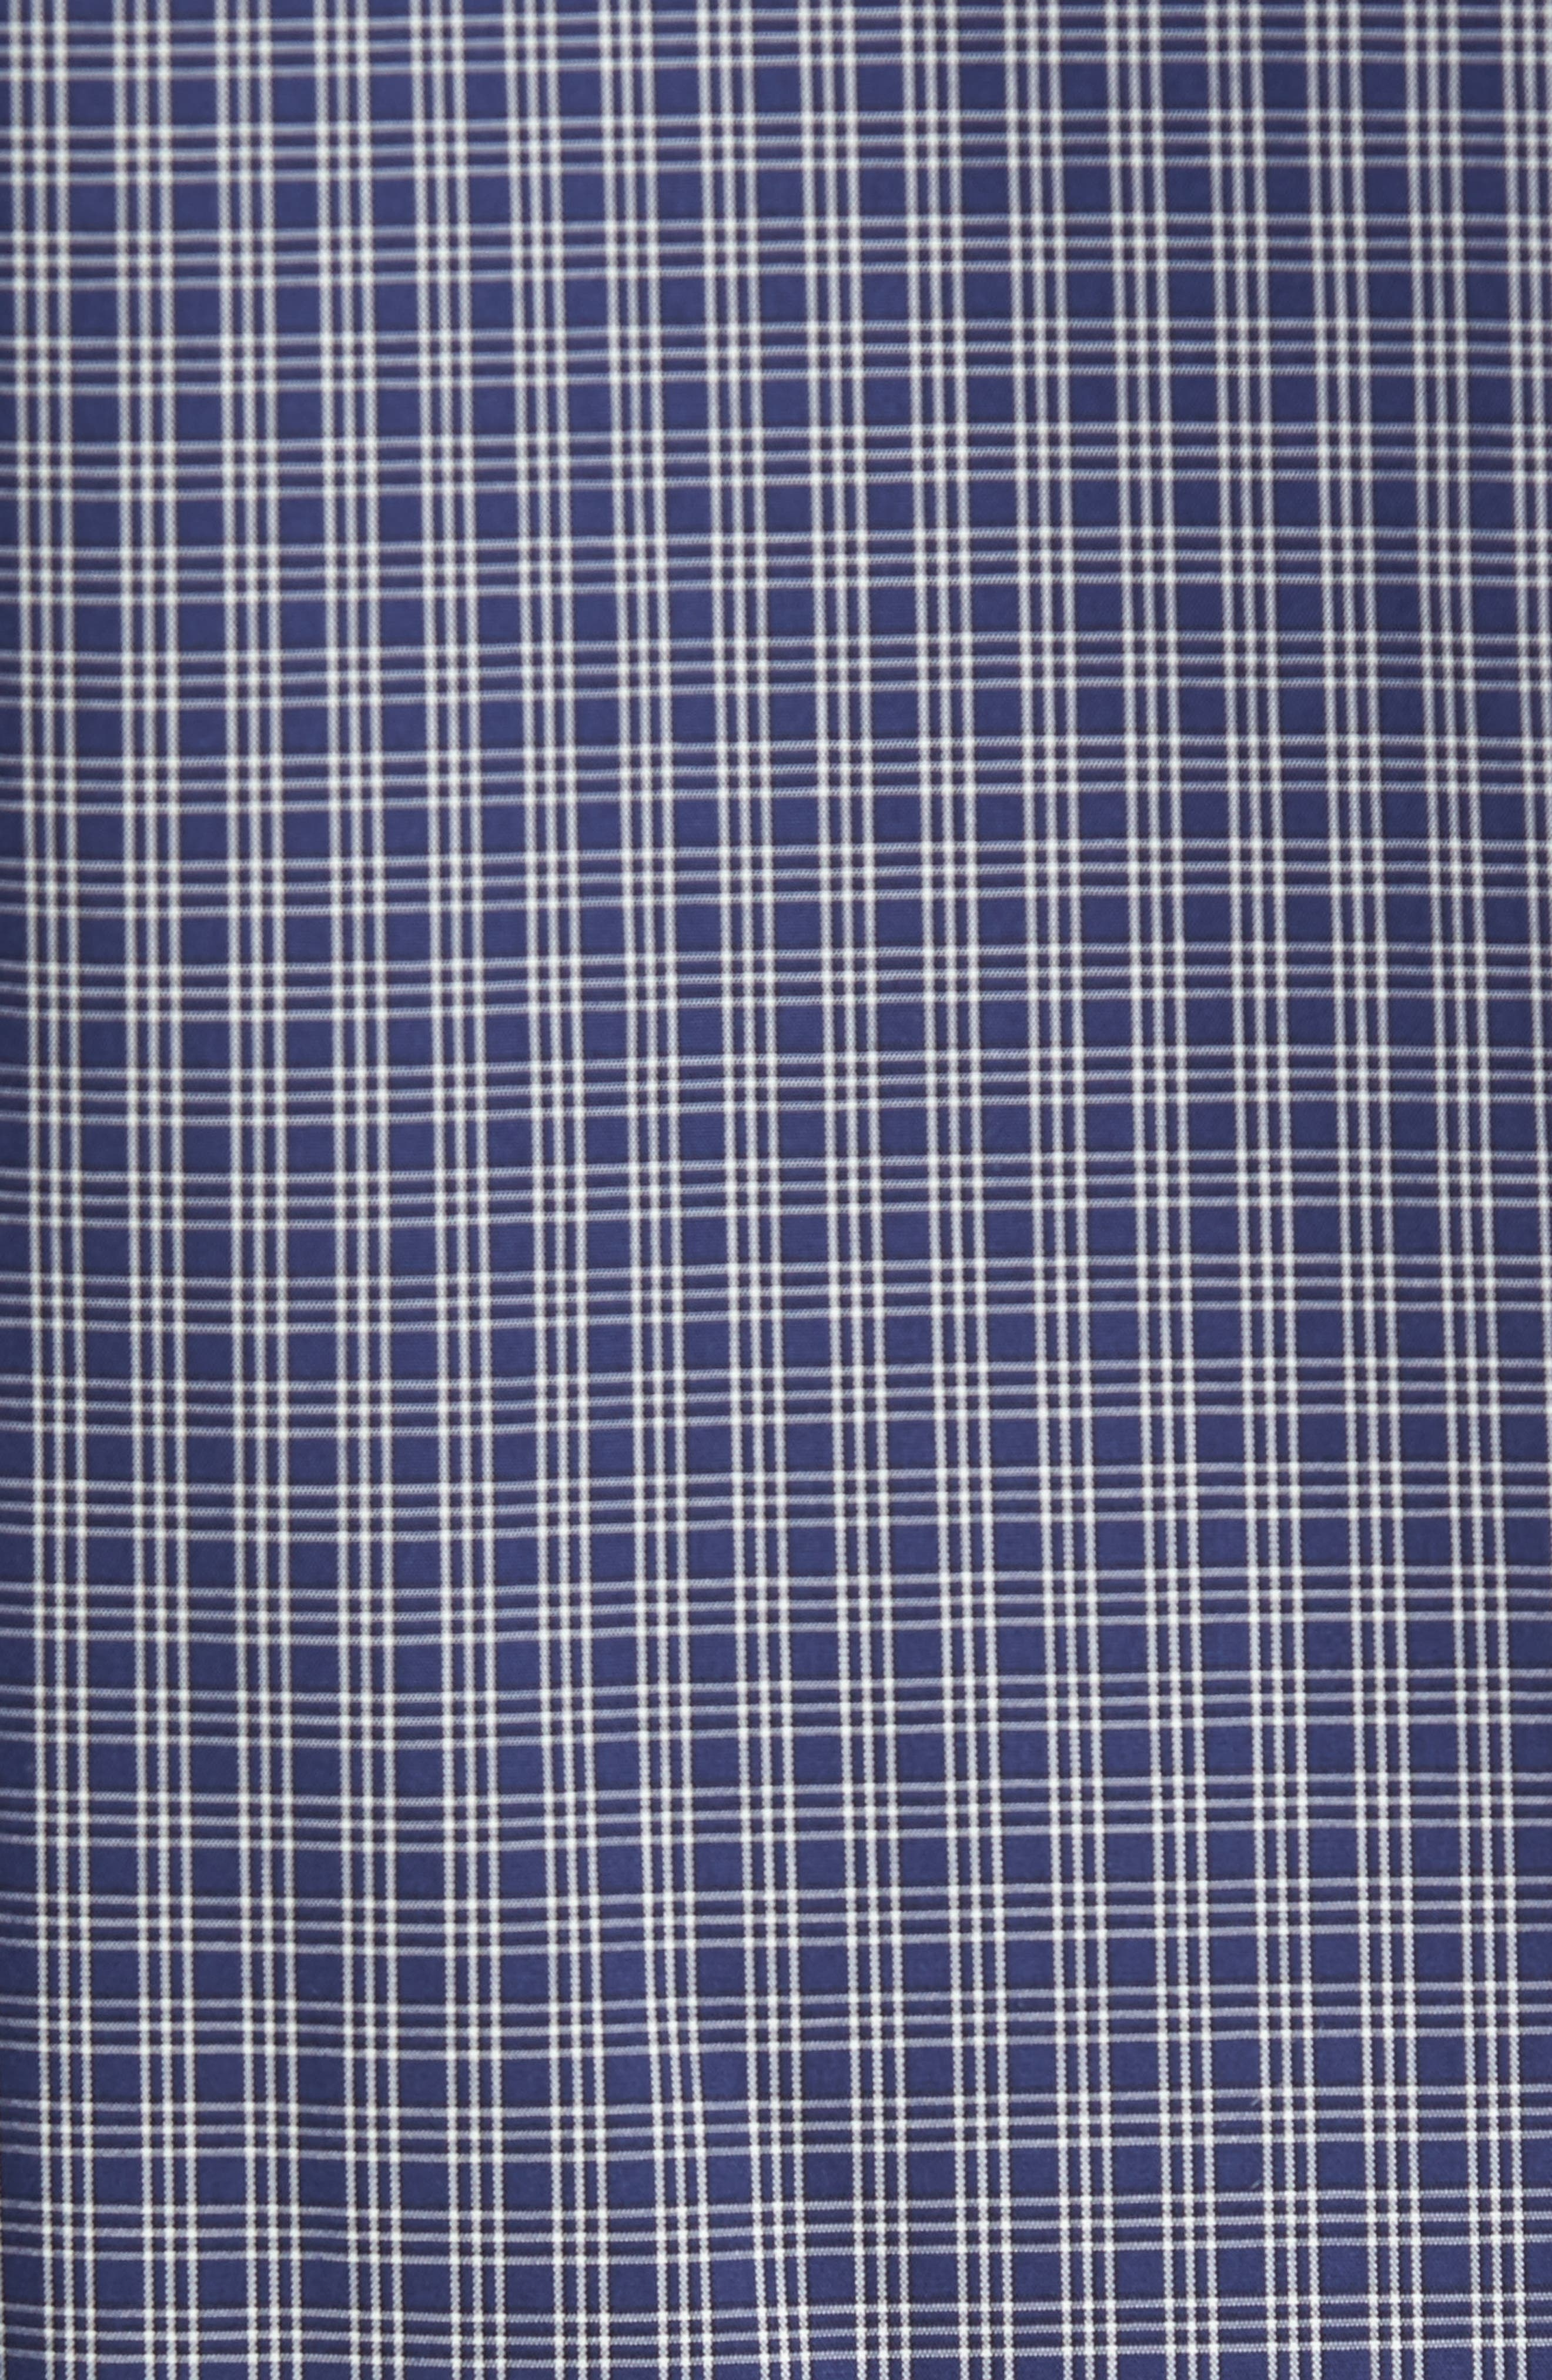 Regular Fit Non-Iron Mini Check Sport Shirt,                             Alternate thumbnail 5, color,                             410